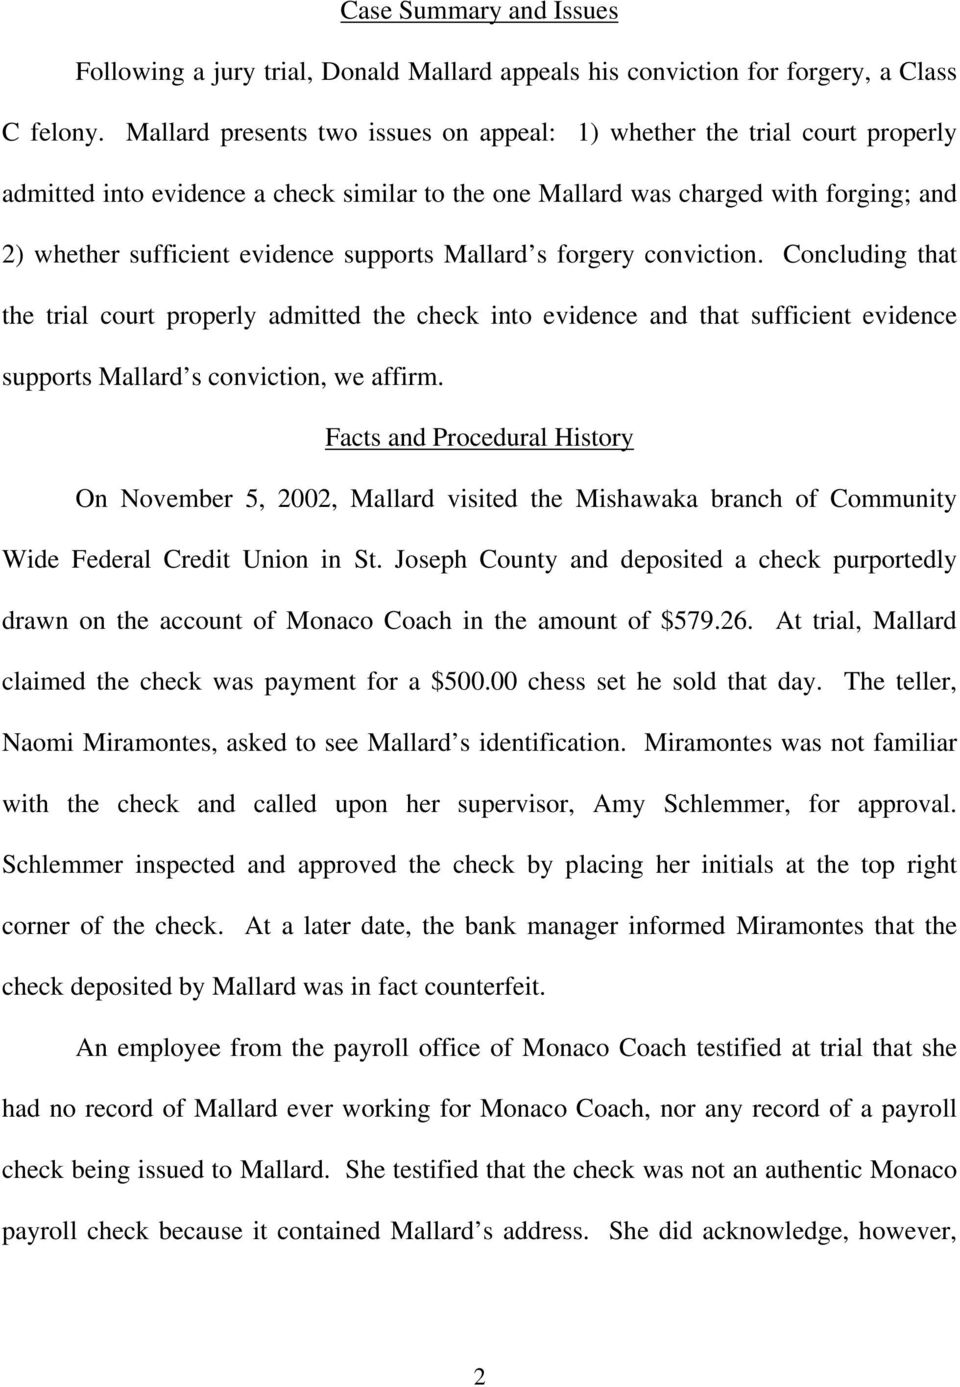 supports Mallard s forgery conviction. Concluding that the trial court properly admitted the check into evidence and that sufficient evidence supports Mallard s conviction, we affirm.